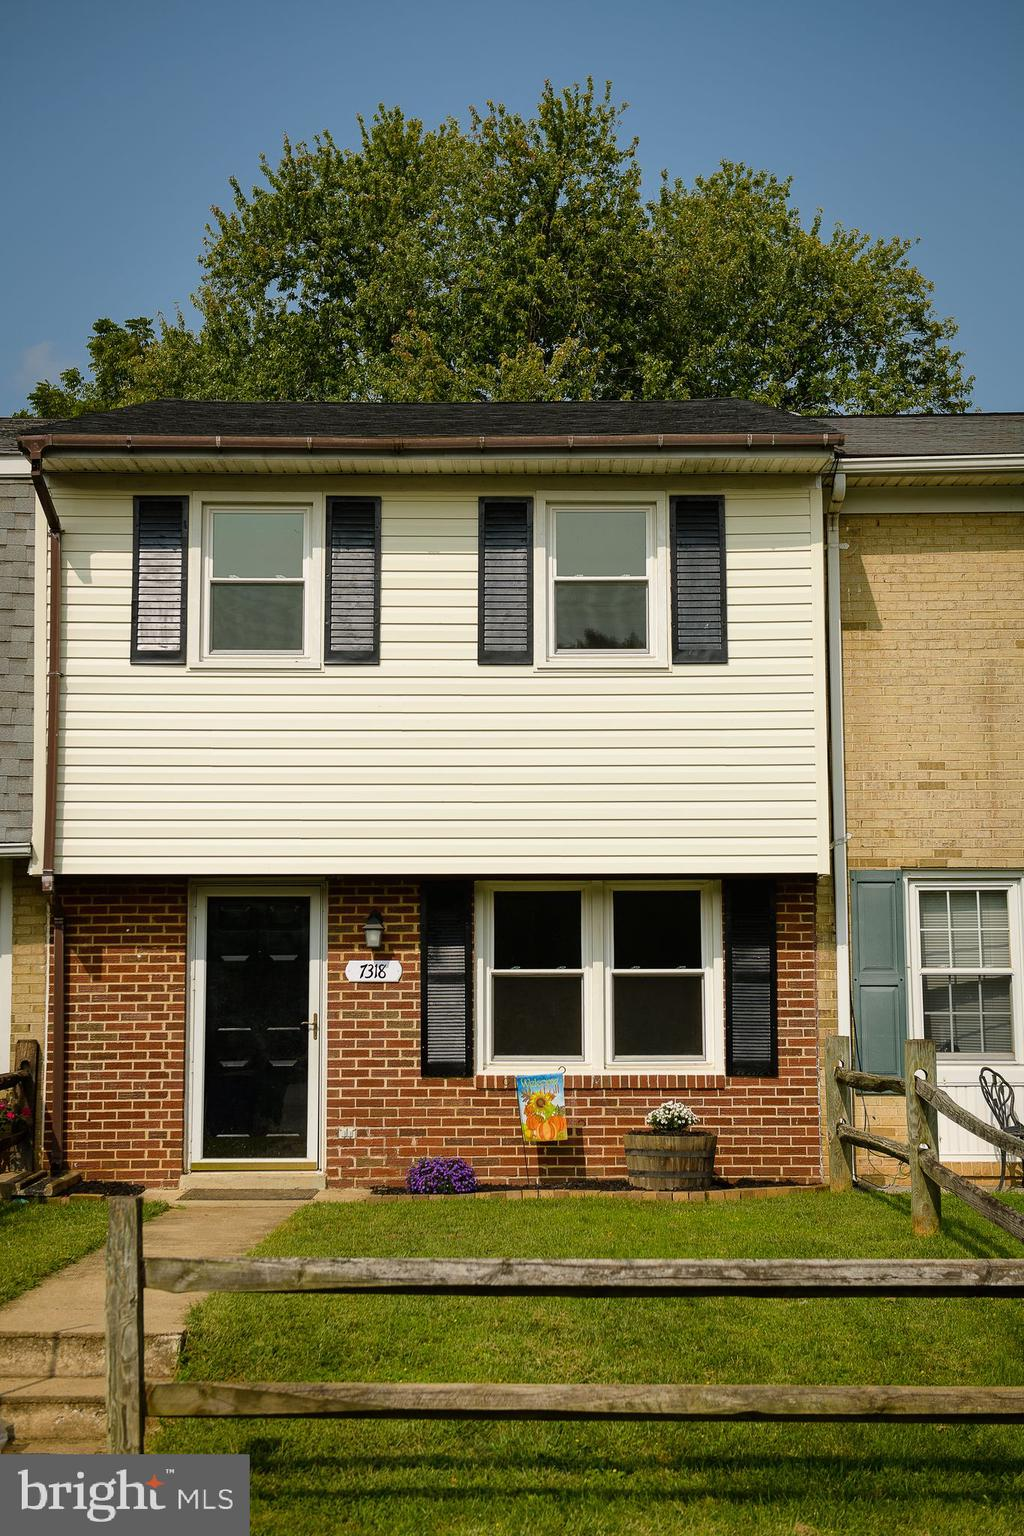 Spacious two level townhome just outside of the Middletown City. Numerous improvements which include a new roof, new siding, new floors, refinished hardwood floors upstairs. Newer appliances, granite countertop with a fully fenced backyard with patio. Close to new shopping center!! This one will go fast!!